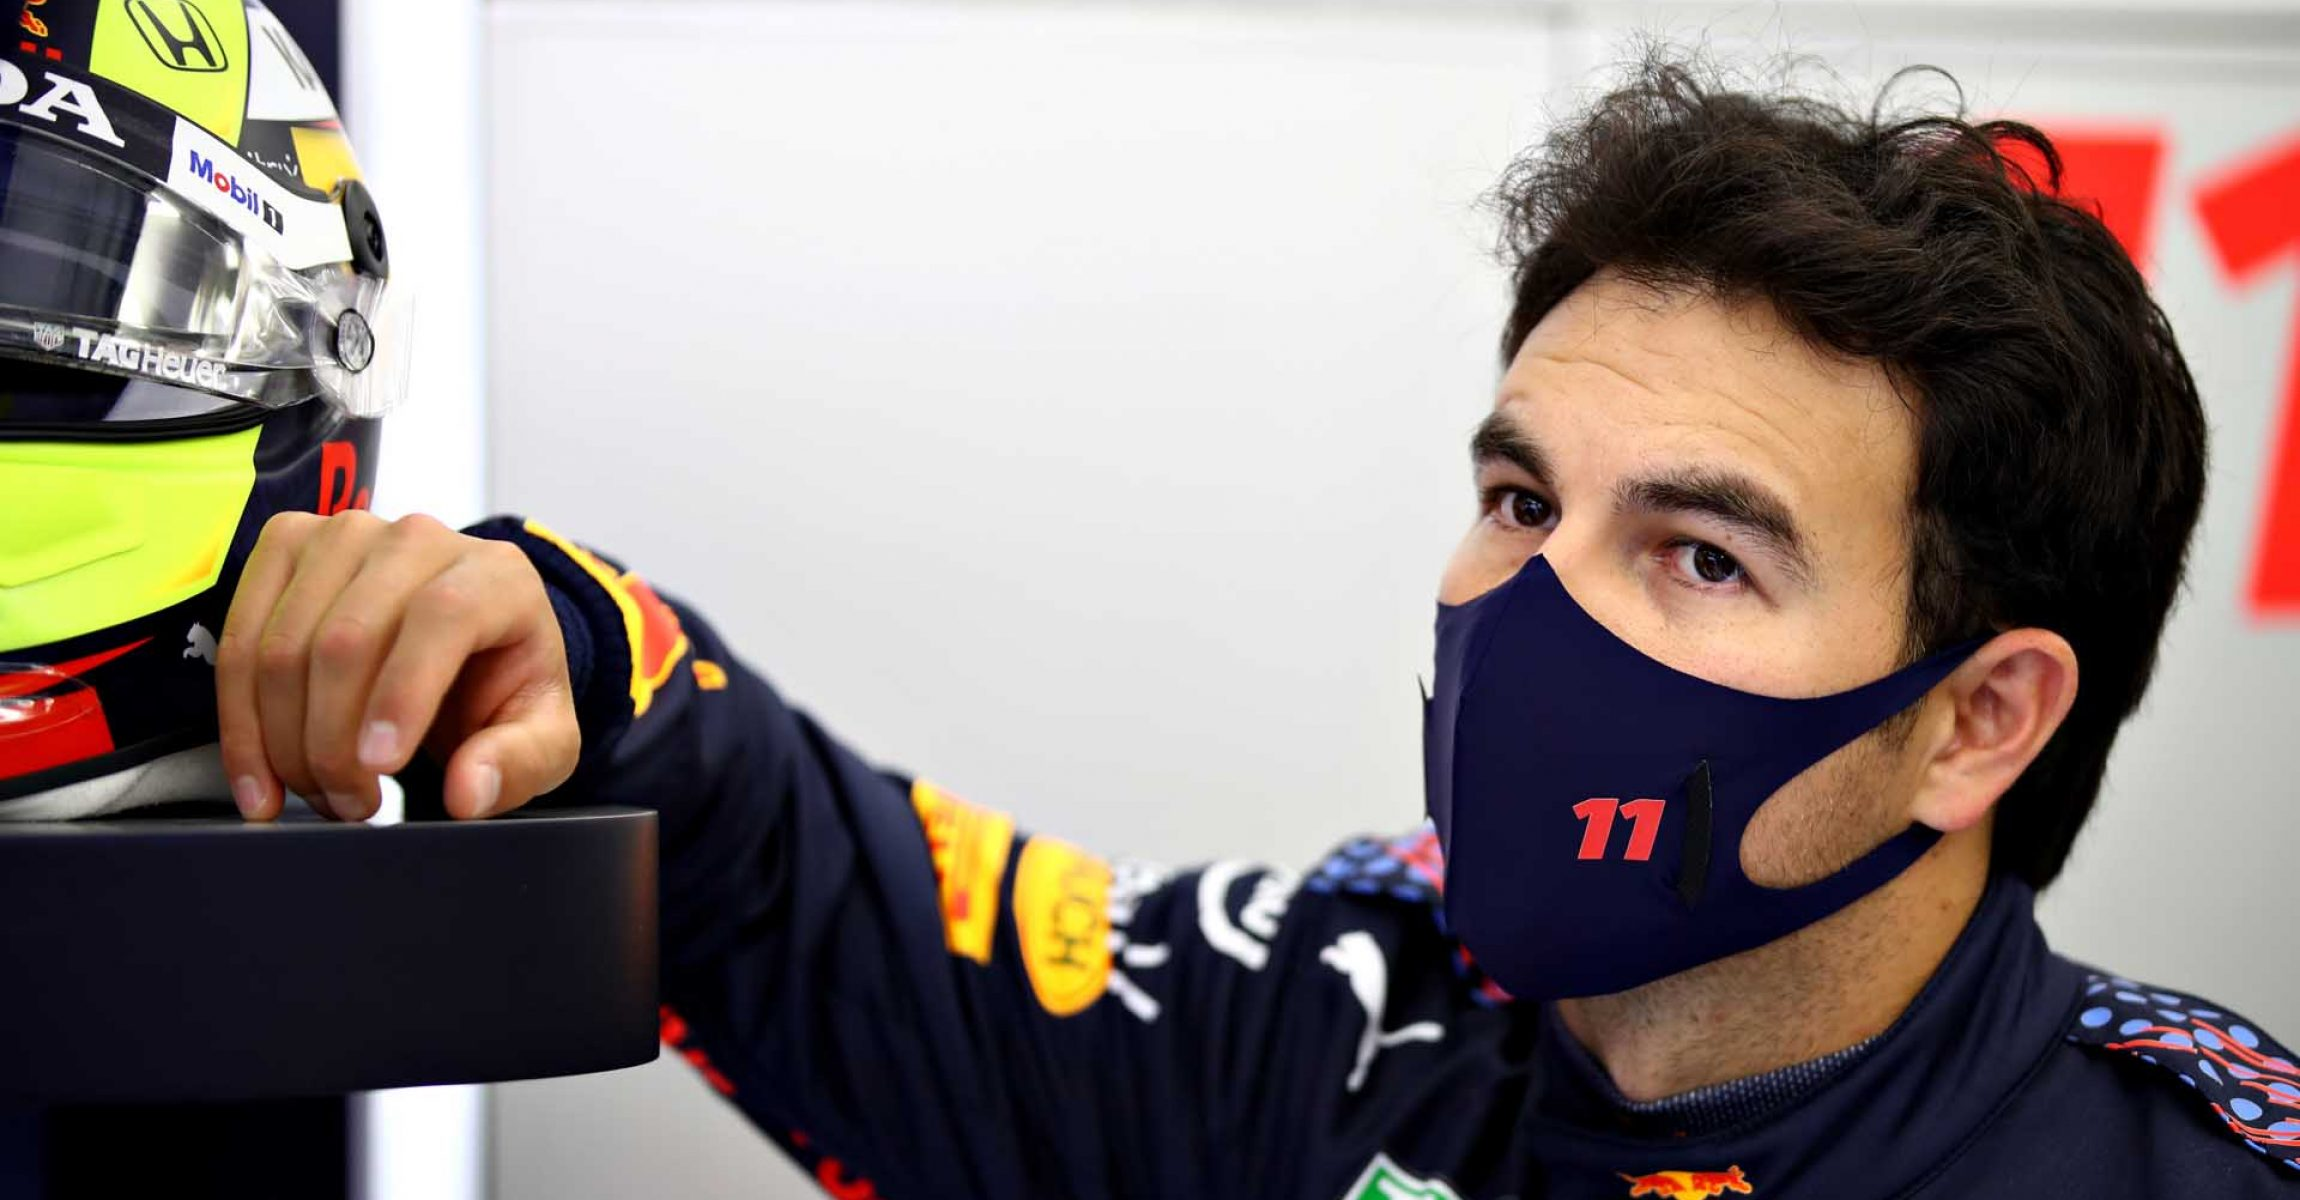 BAHRAIN, BAHRAIN - MARCH 11: Sergio Perez of Mexico and Red Bull Racing looks on in the garage during previews ahead of Formula 1 Testing at Bahrain International Circuit on March 11, 2021 in Bahrain, Bahrain. (Photo by Mark Thompson/Getty Images)